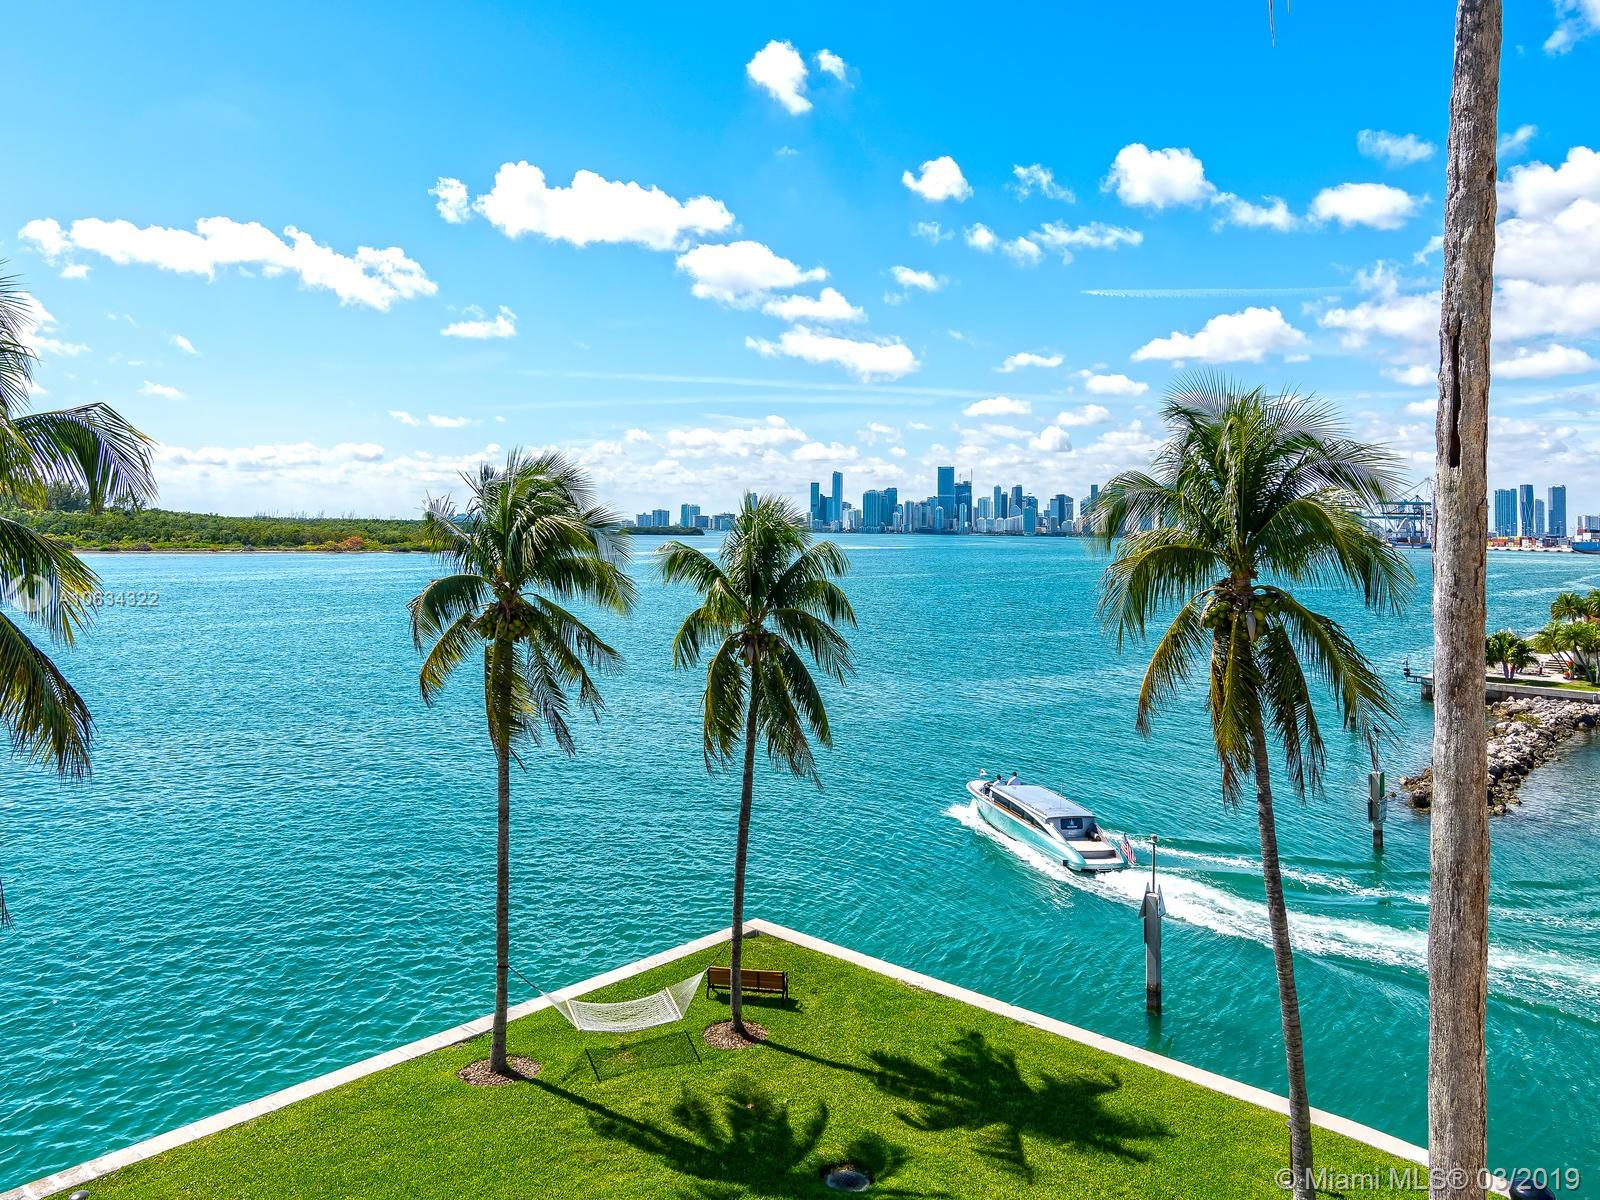 2436 Fisher Island Dr # 2436, Miami Beach, Florida 33109, 4 Bedrooms Bedrooms, ,4 BathroomsBathrooms,Residential Lease,For Rent,2436 Fisher Island Dr # 2436,A10634322